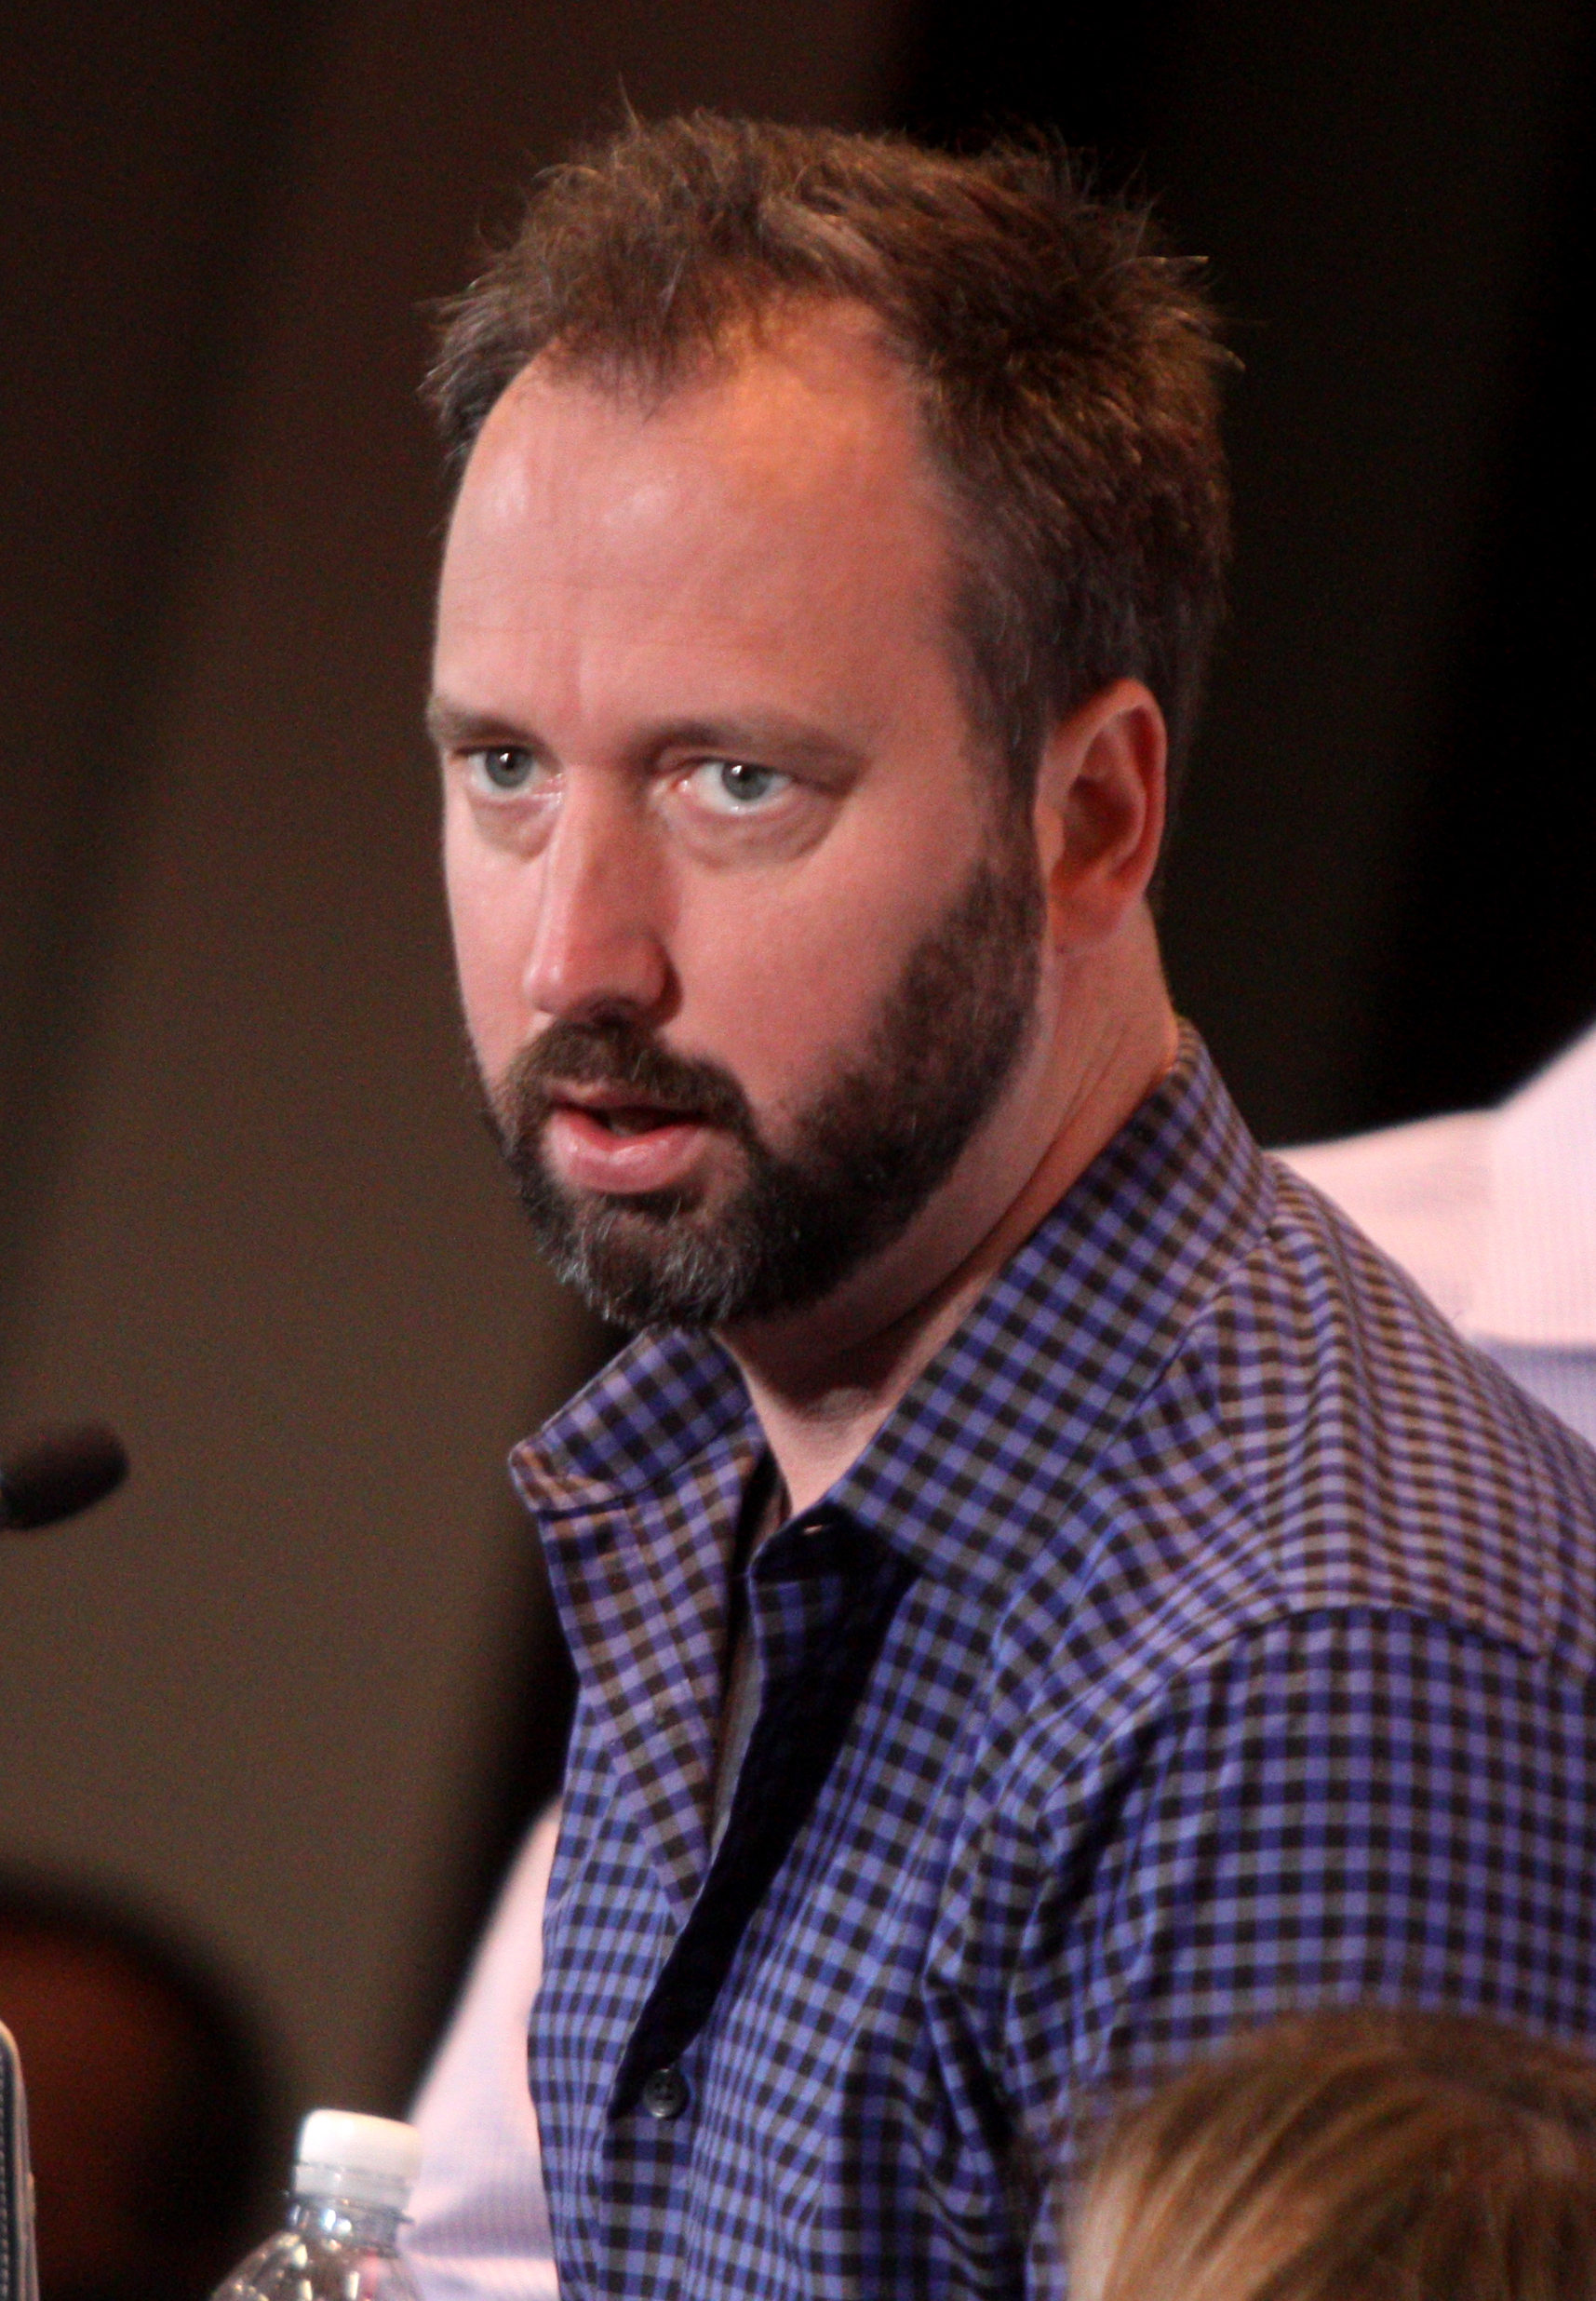 The 45-year old son of father Richard Green and mother Mary Jane Green, 190 cm tall Tom Green in 2017 photo